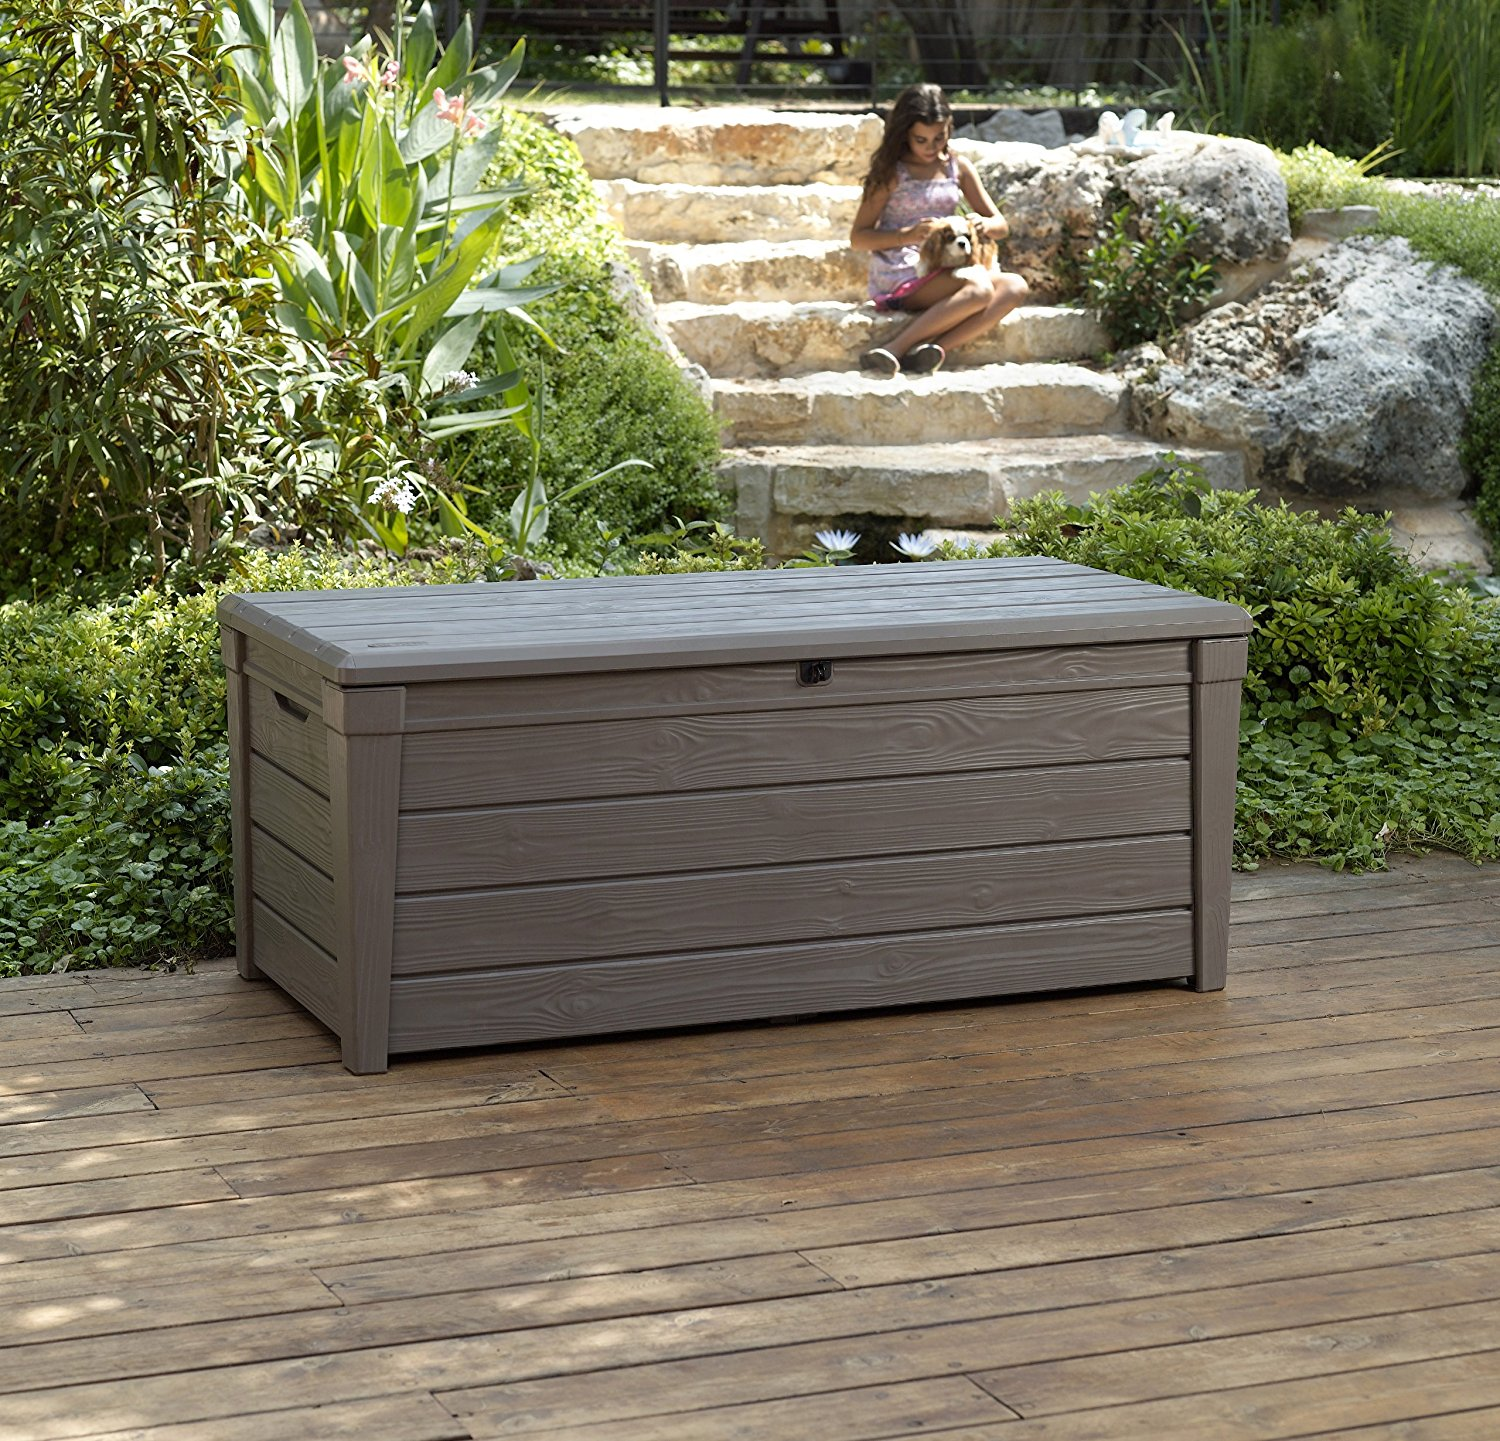 Keter 150 Gallon Deck Box | Keter Box | Deck Box Storage Bench